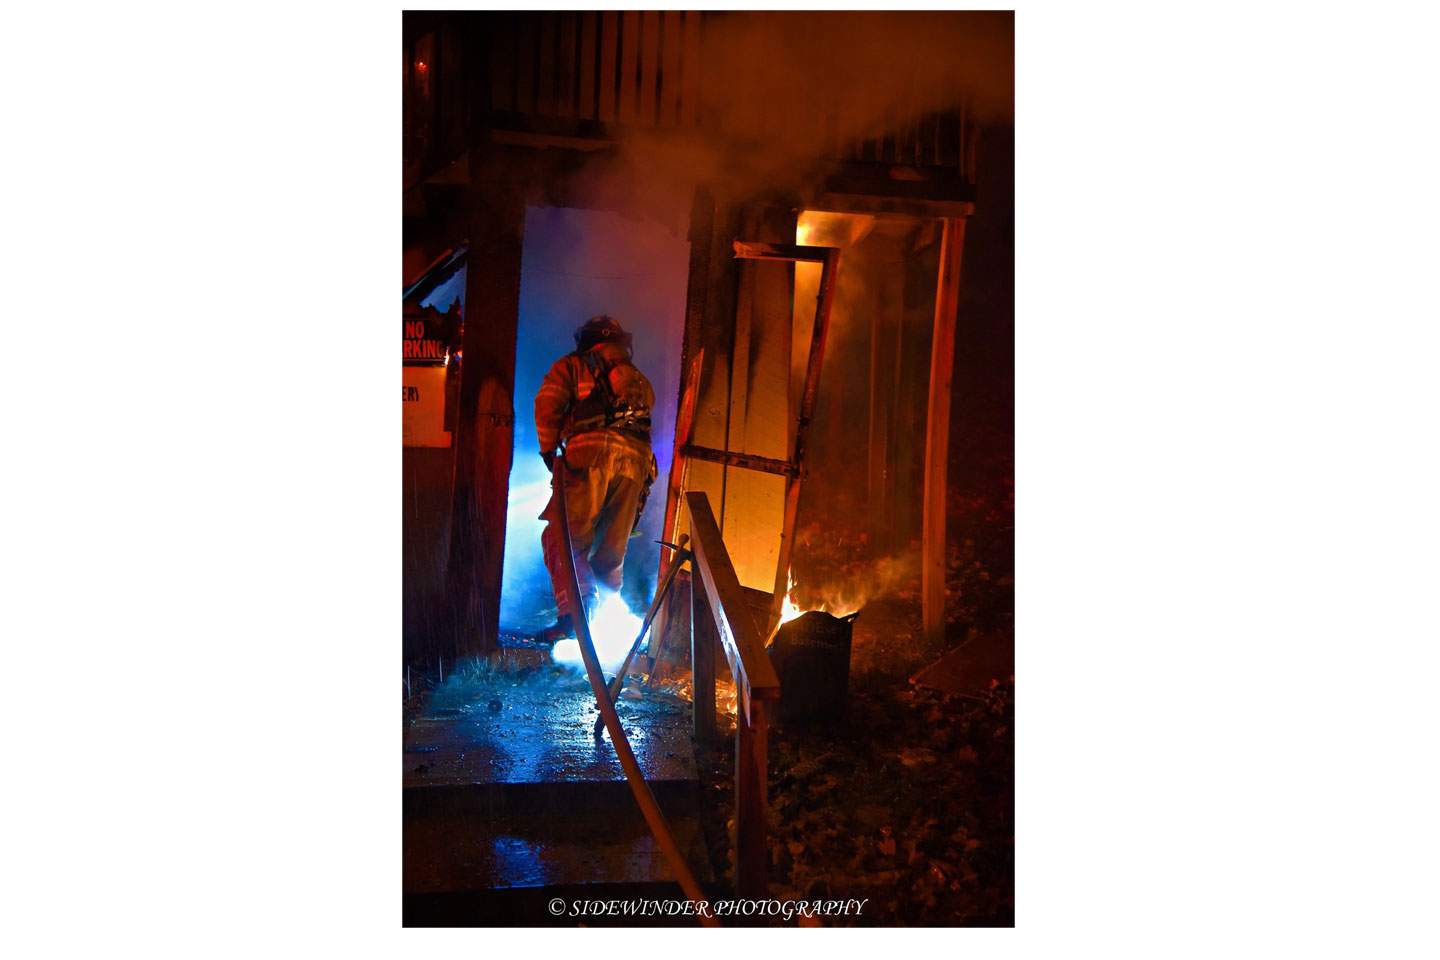 A firefighter advances a hoseline into the structure.